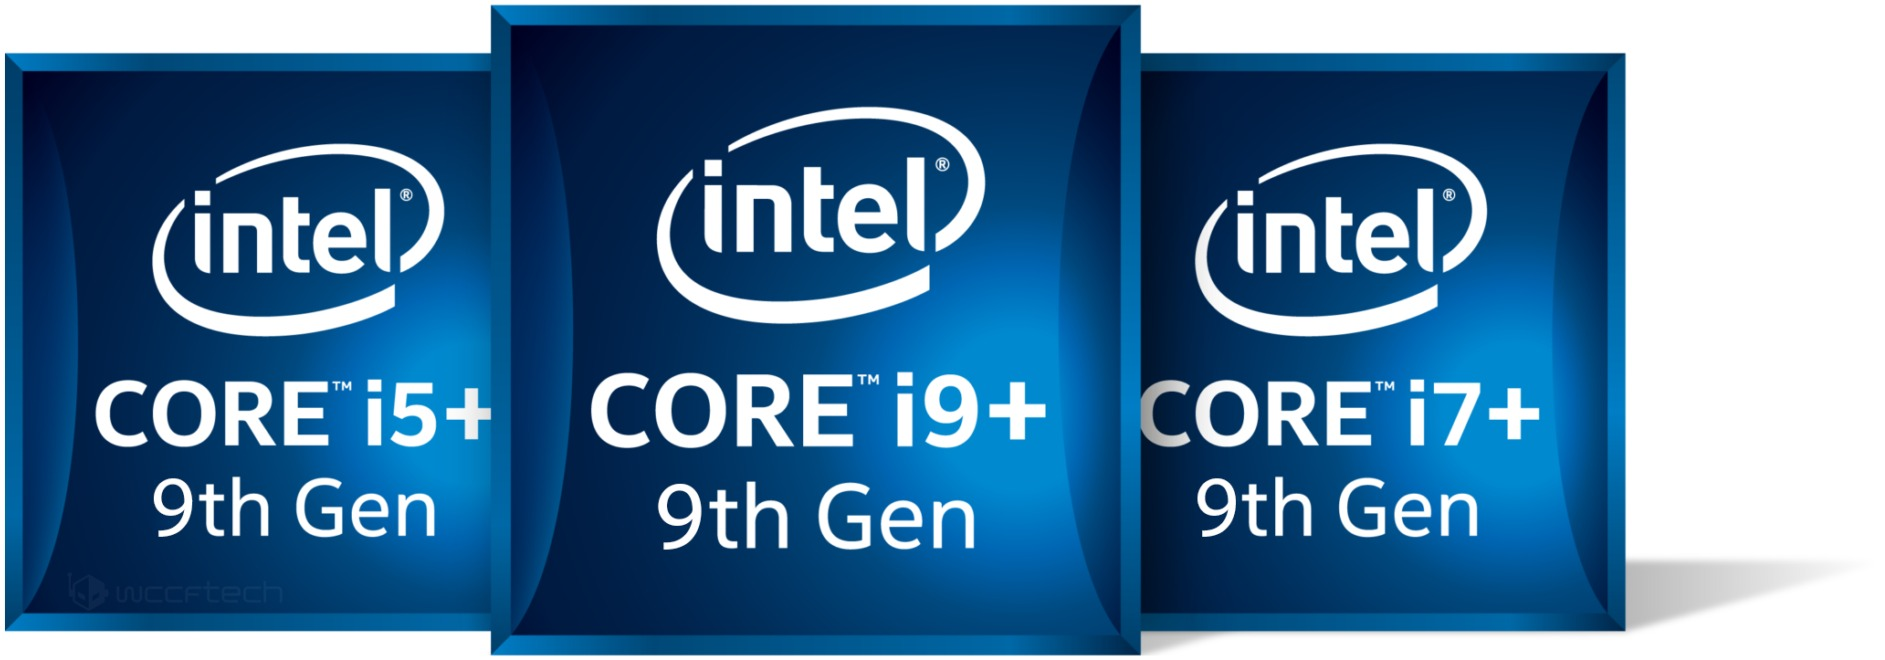 9th Gen Intel Core i9, i7, and i5 Processors